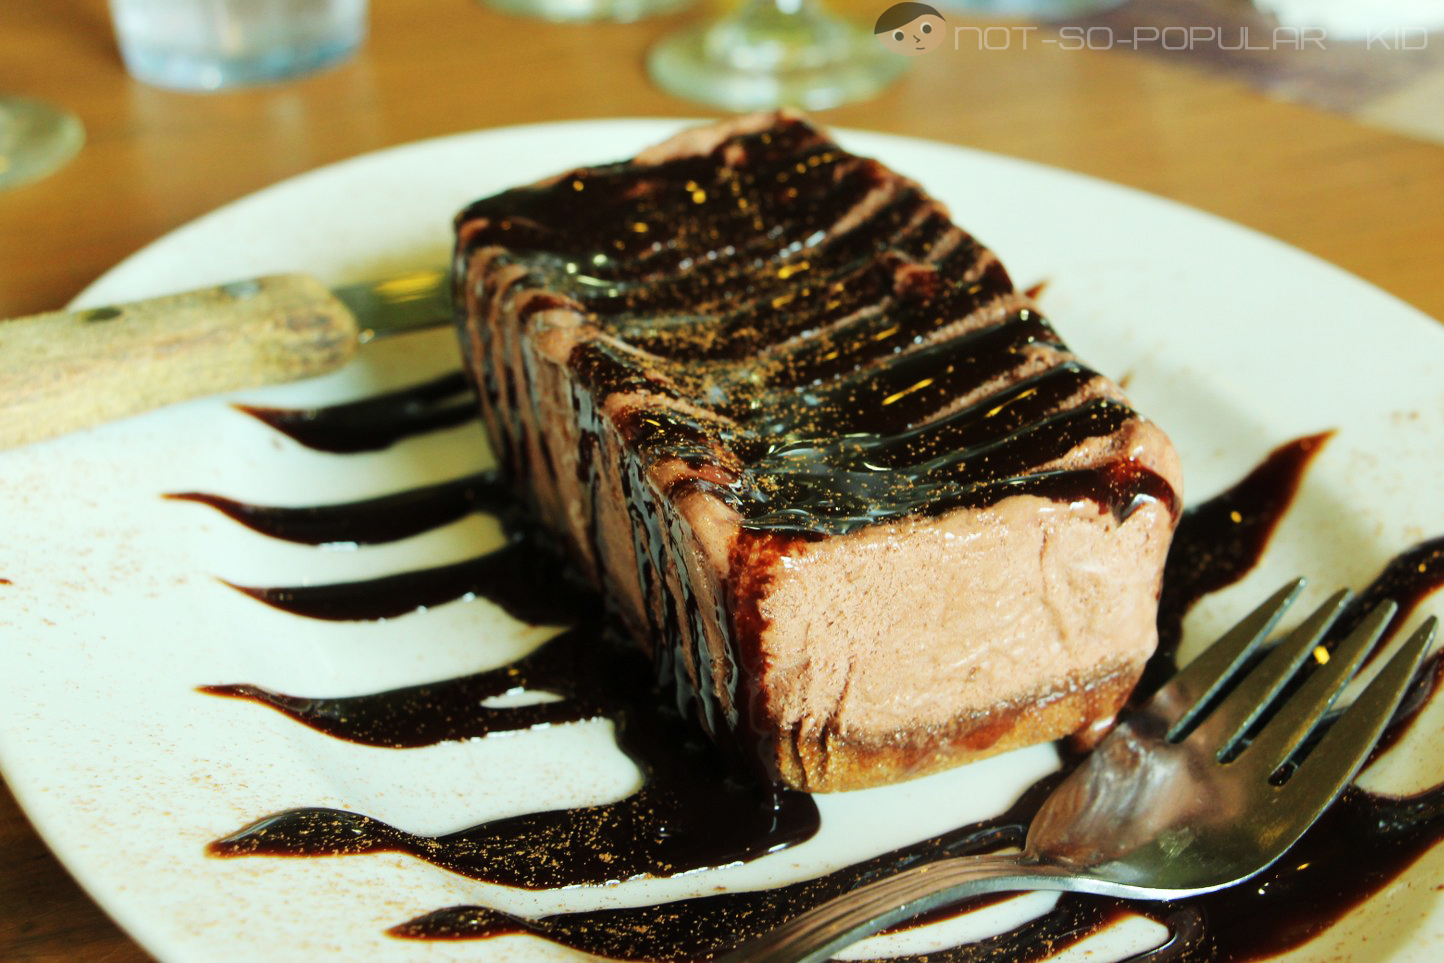 Mississippi Mud Pie: Oozing with Delight